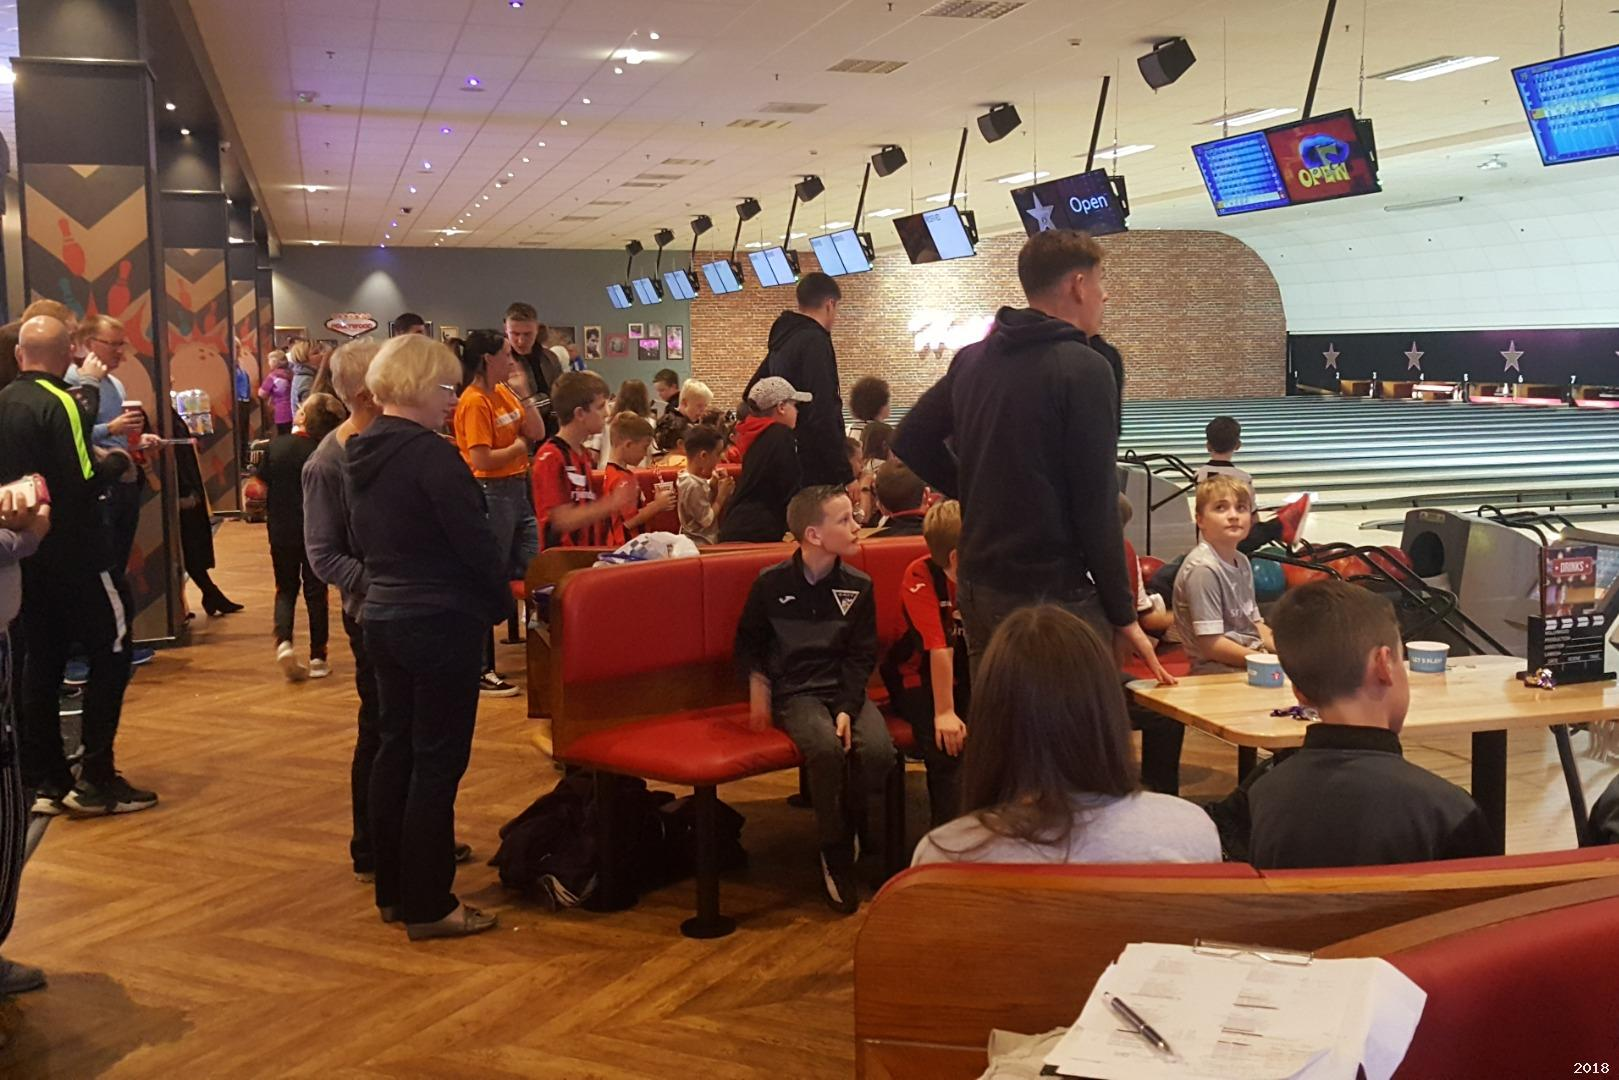 Bowling Night at Hollywood Bowl - September 2018